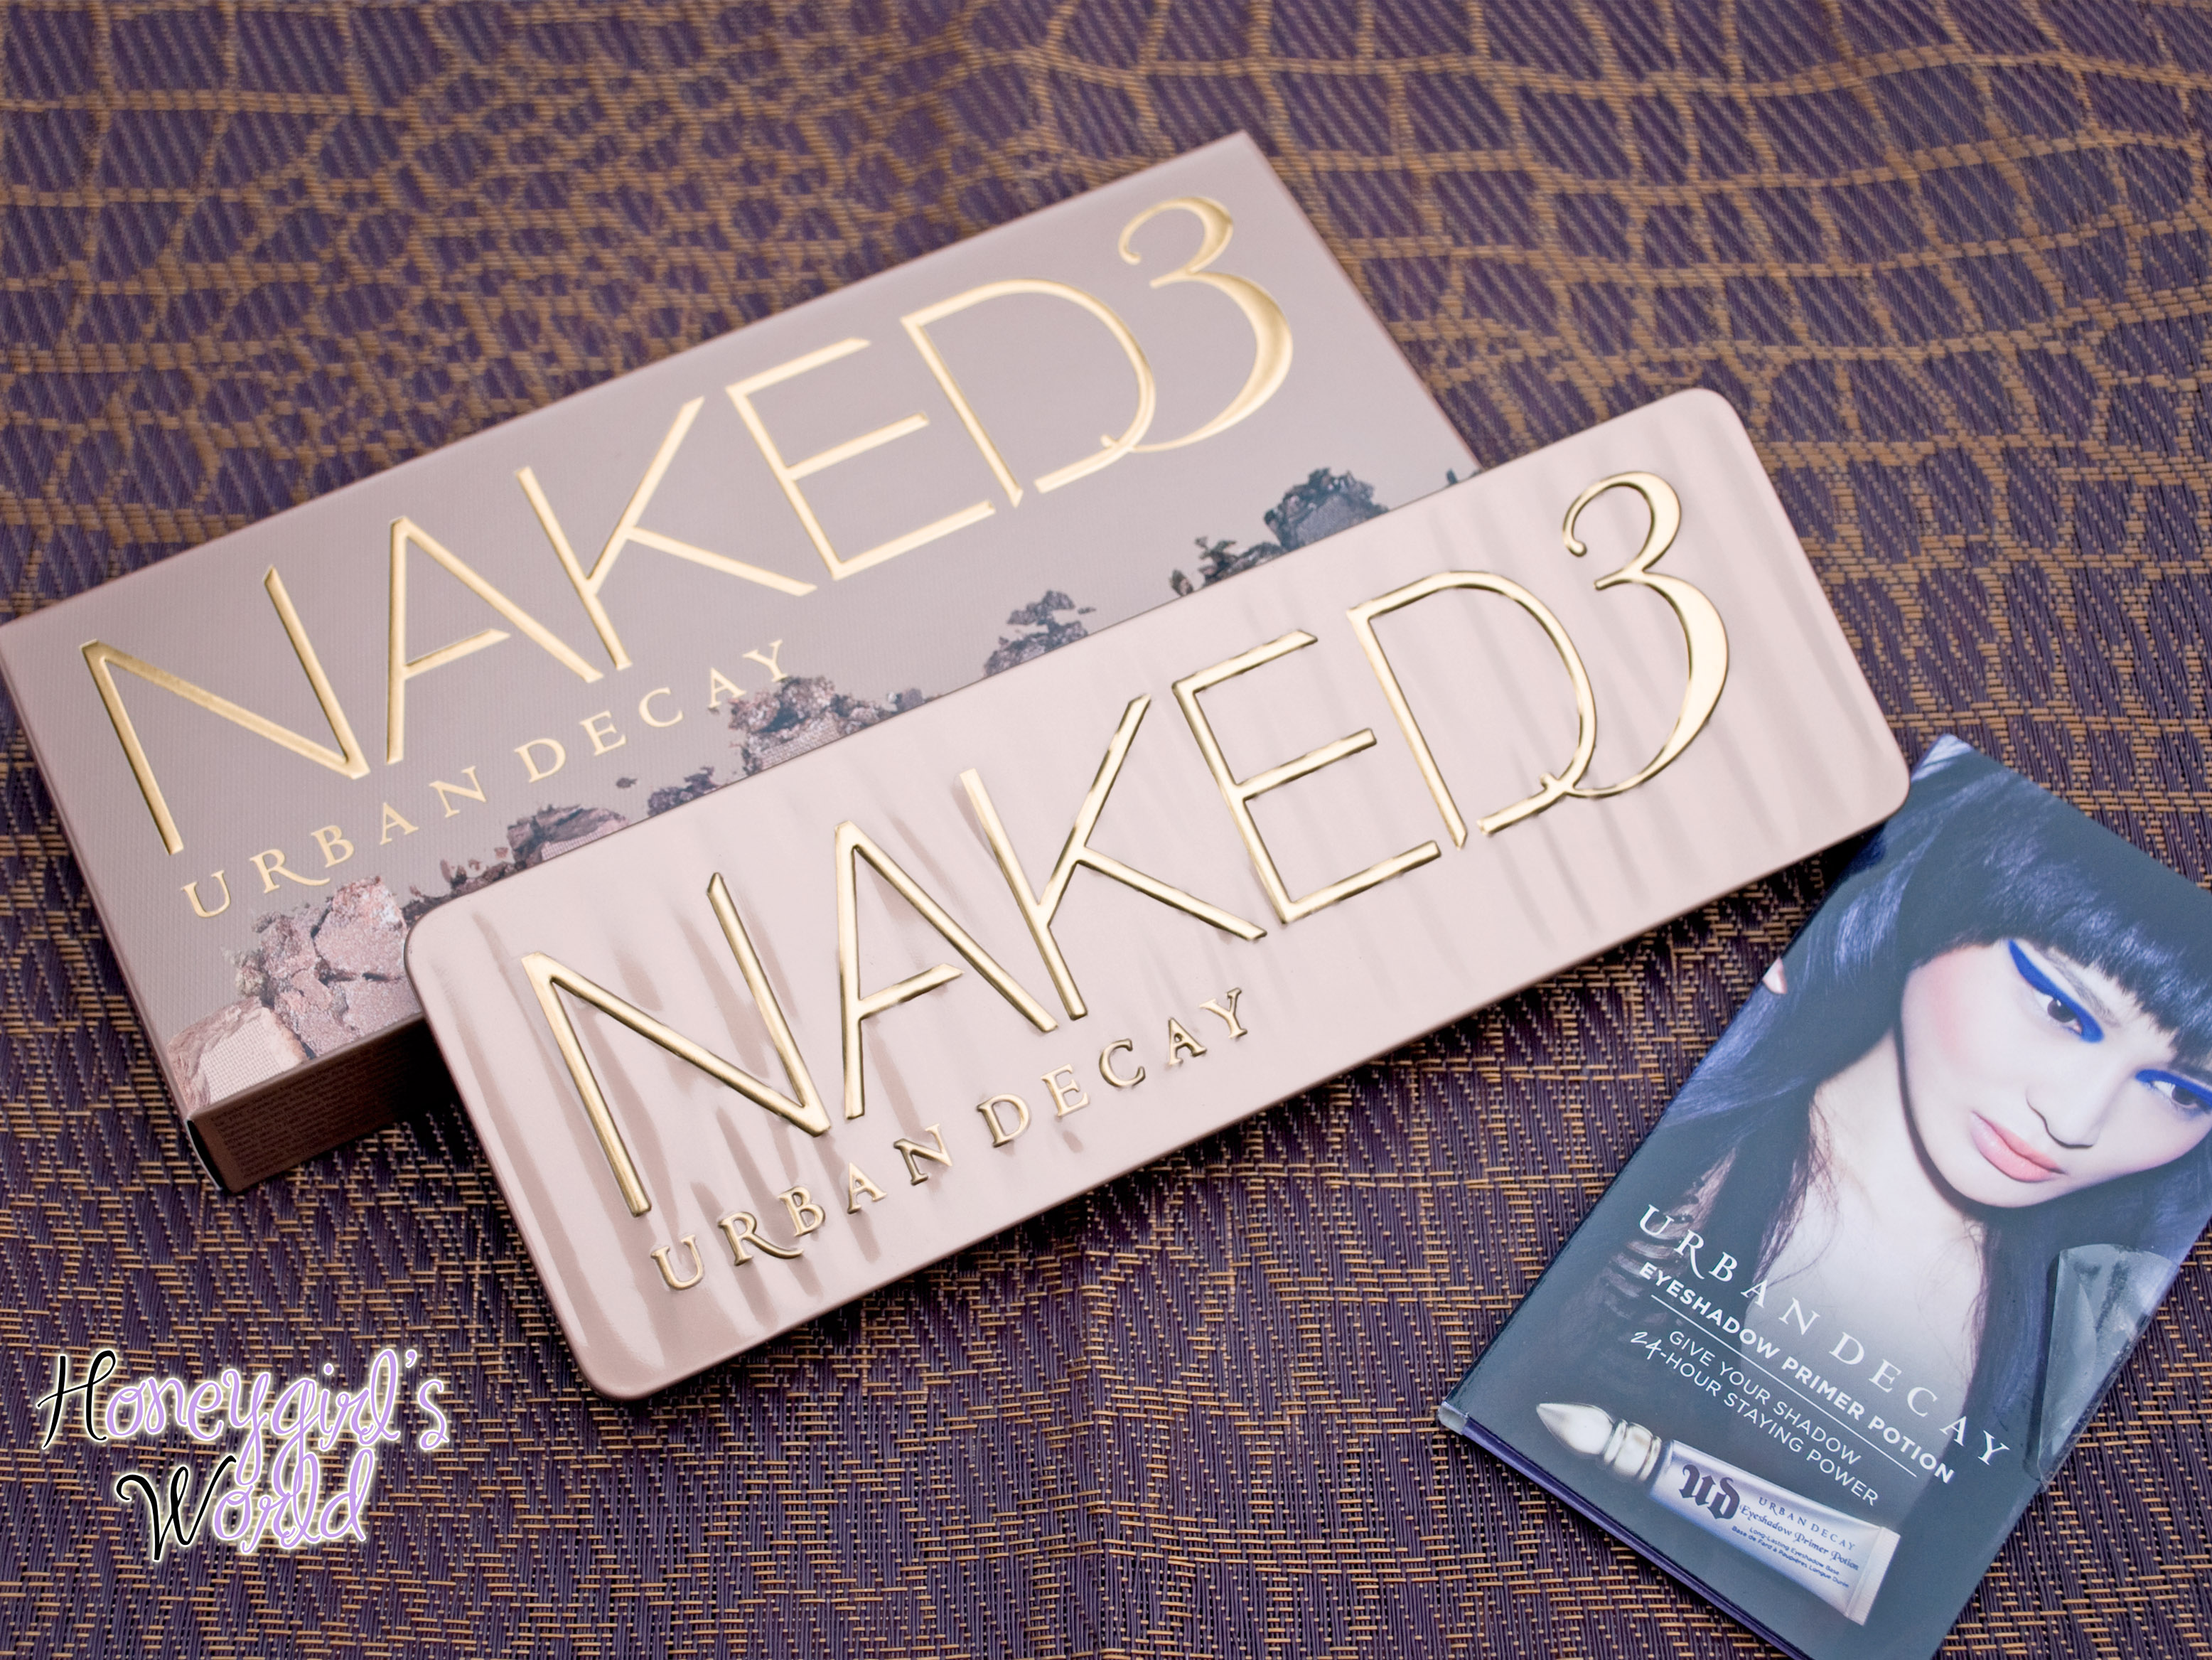 Urban Decay Naked 3 with Packaging